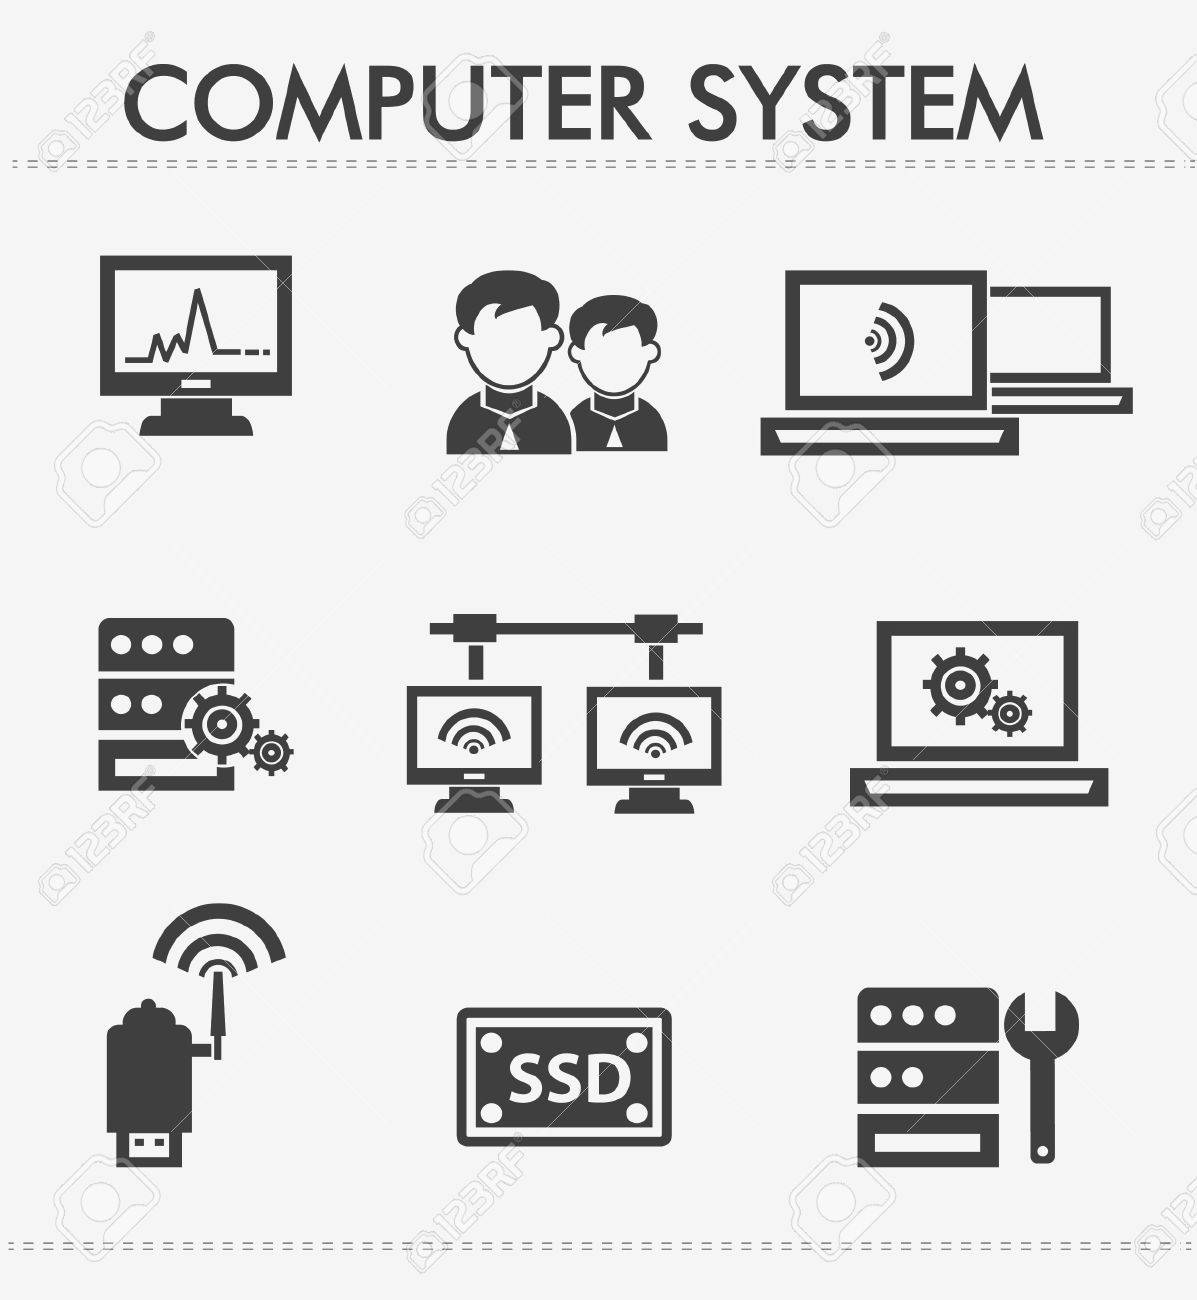 Computer system icons Stock Vector - 19973072